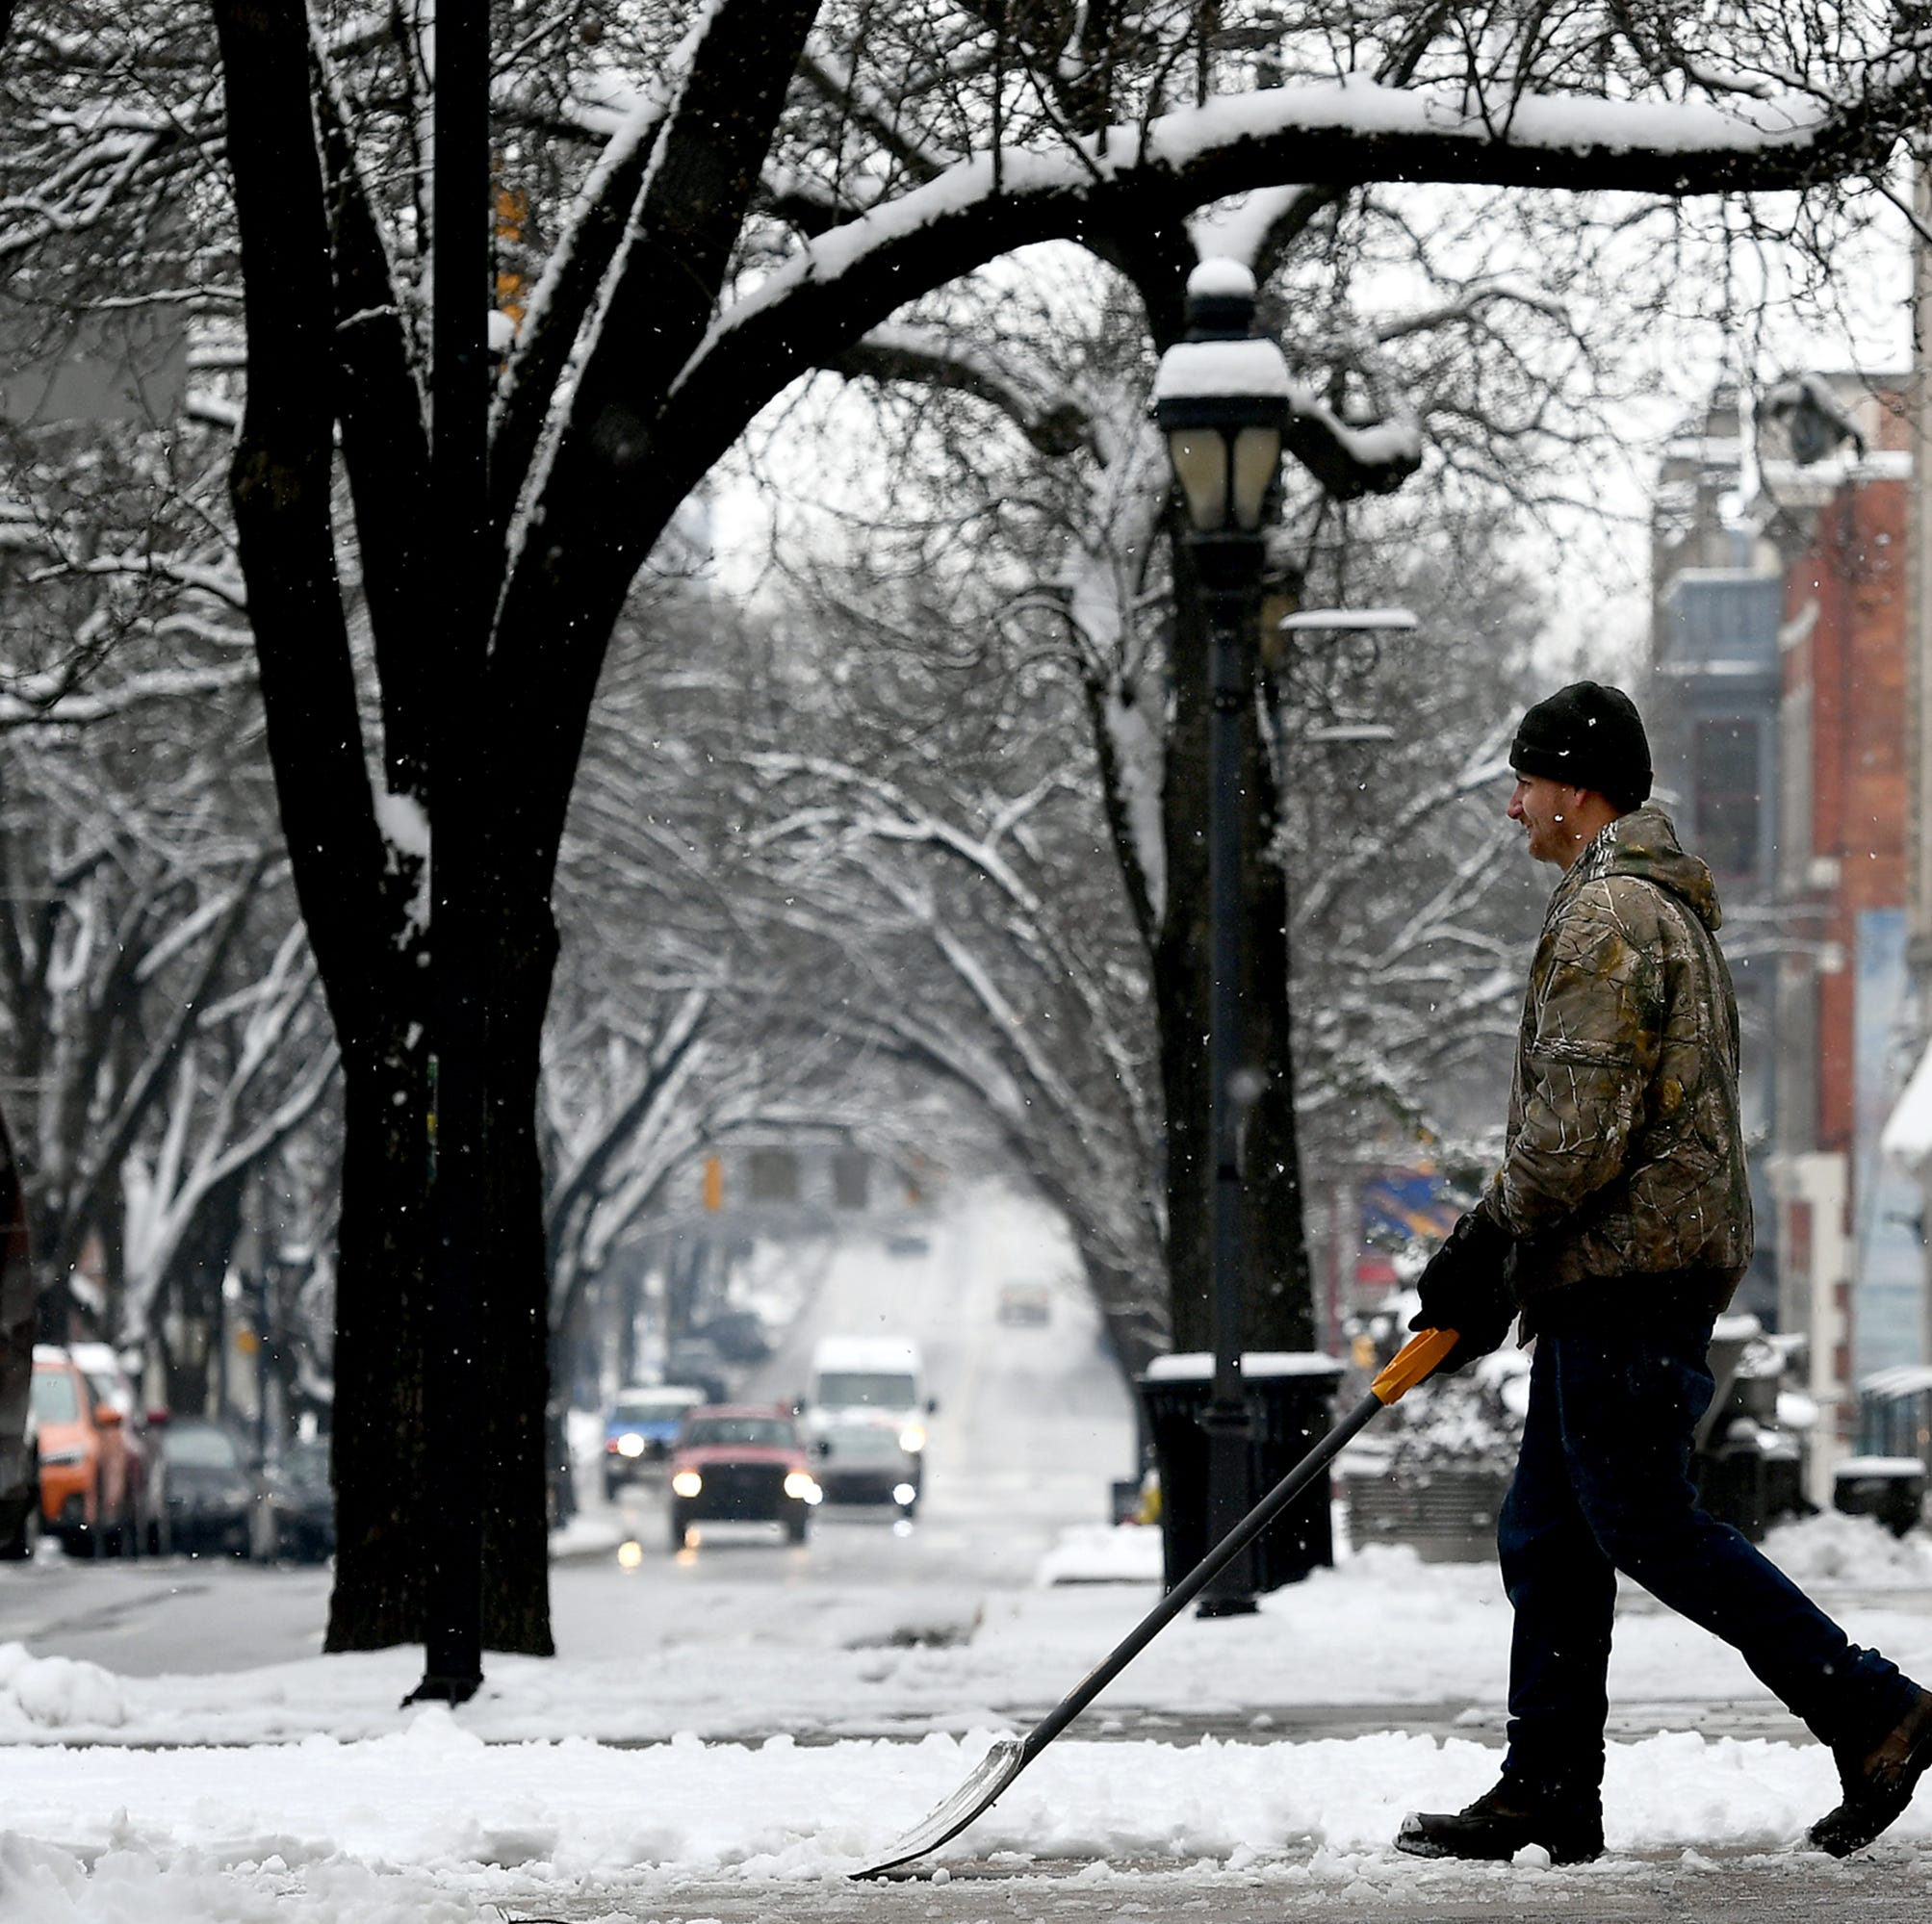 Winter storm: Most York County school districts, city offices closed Wednesday